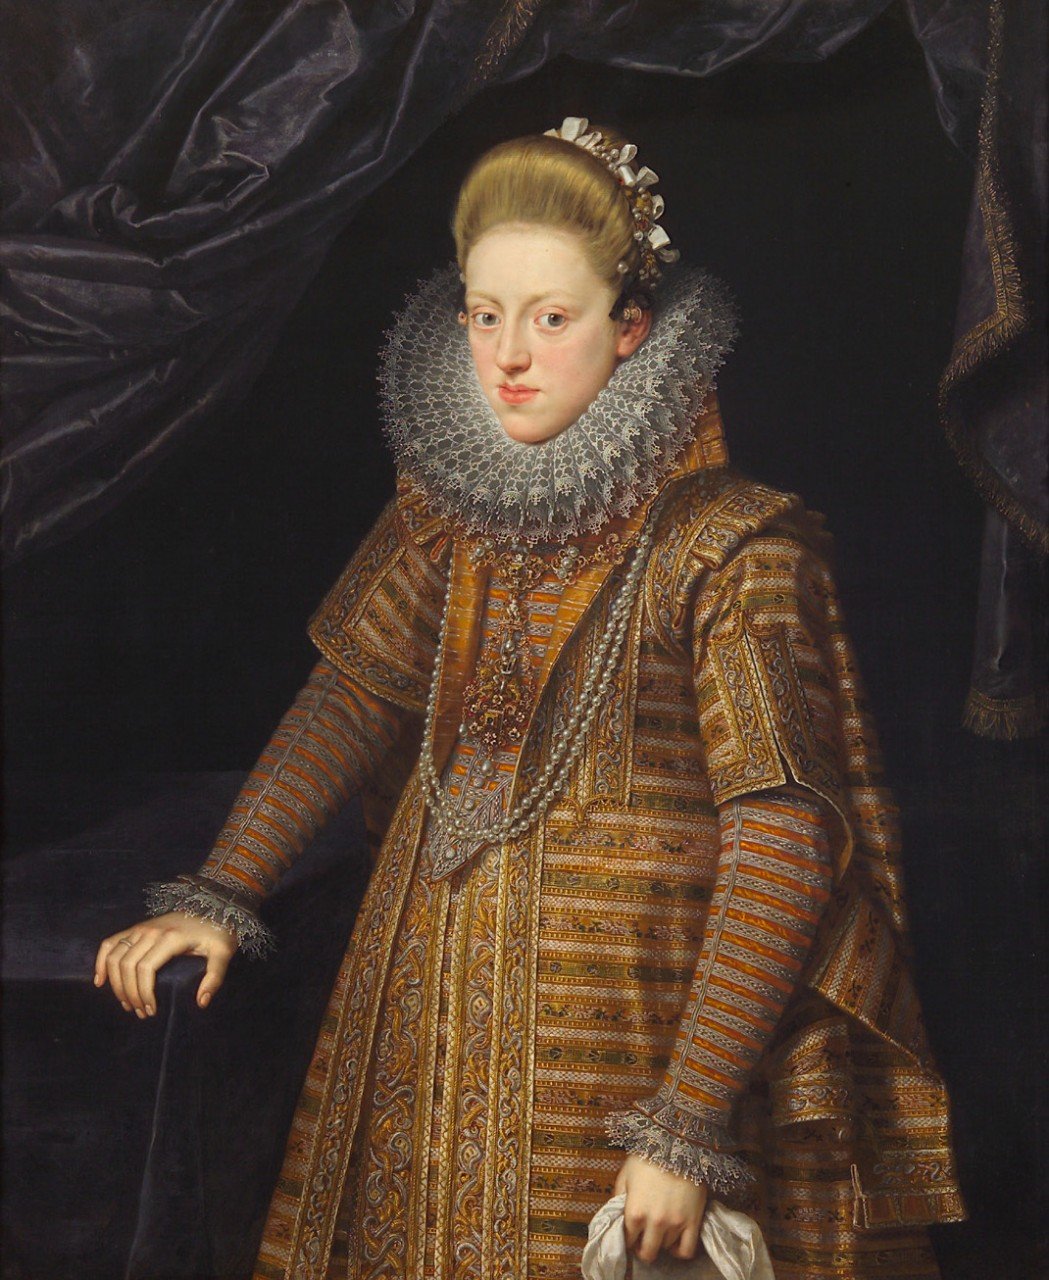 https://upload.wikimedia.org/wikipedia/commons/7/7f/Eleonor_of_Austria_by_F.Pourbus_Jr._%28c._1603%2C_Kunsthistorisches_Museum%29.jpg